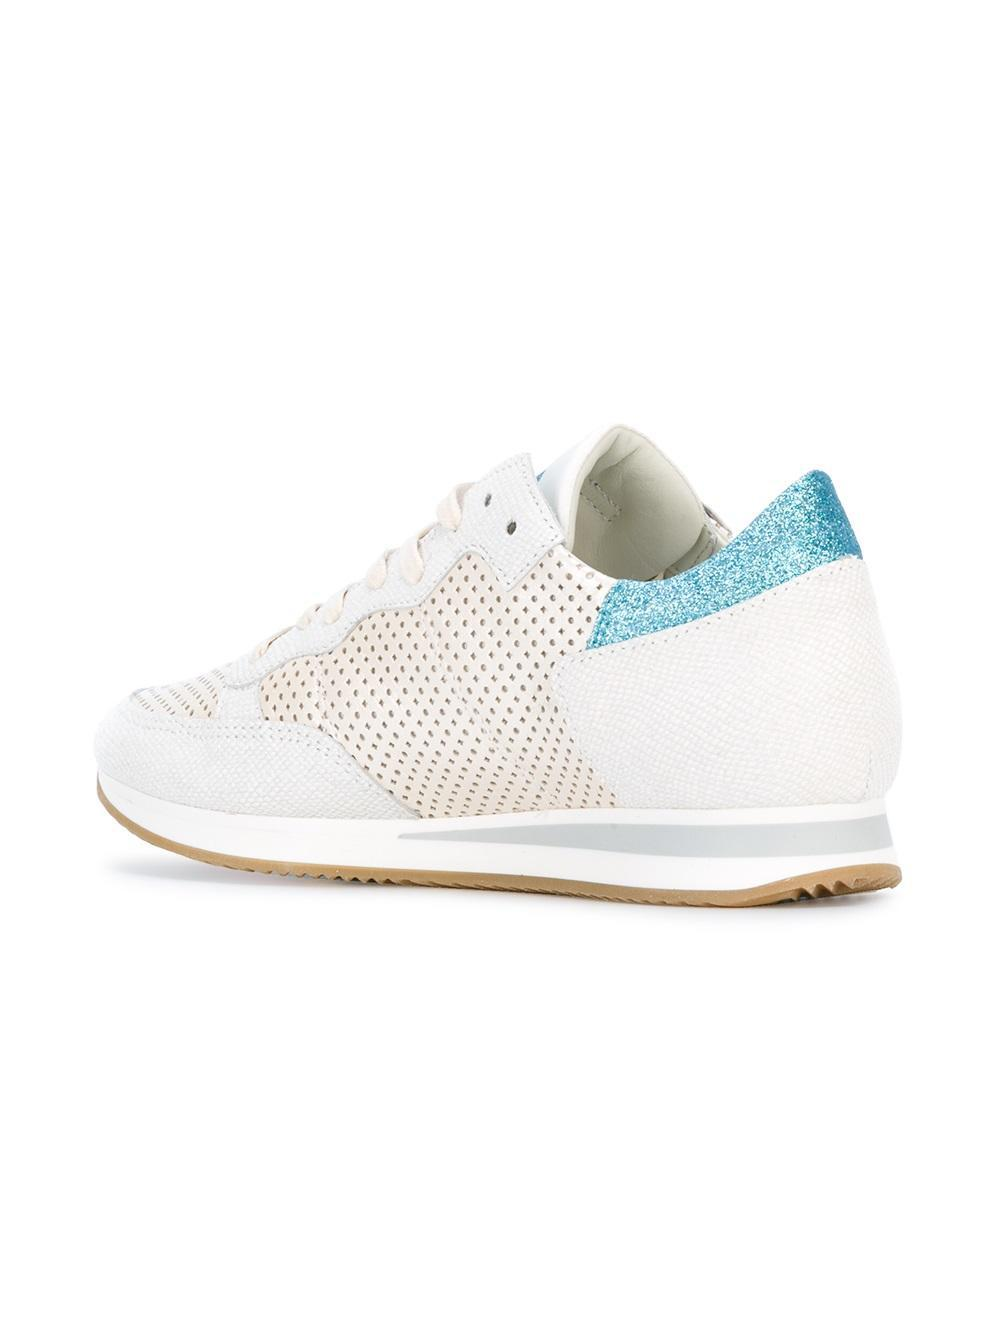 Philippe Model Cotton Lace Up Trainers in White